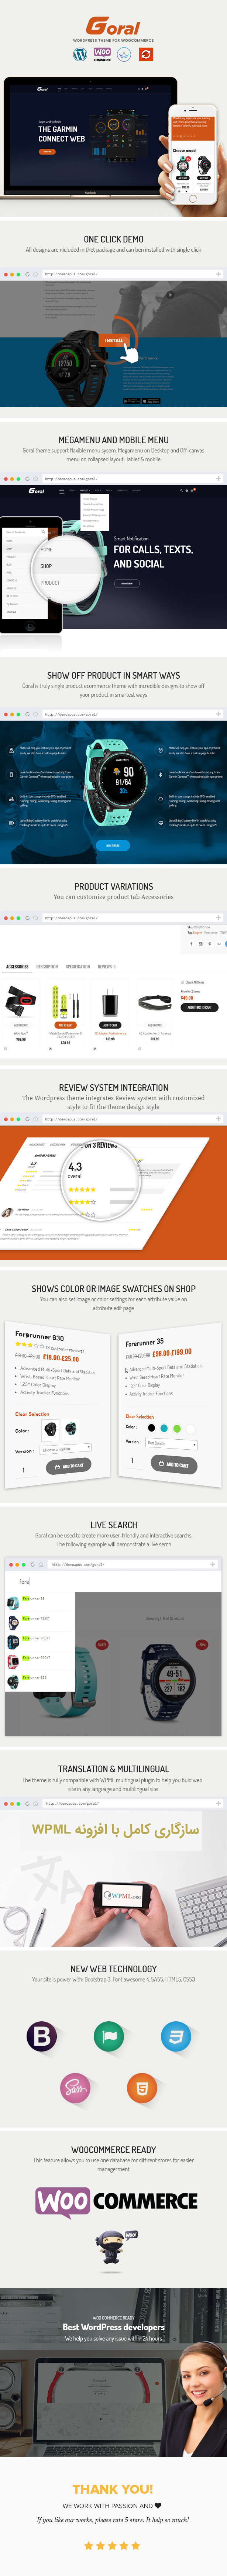 Goral SmartWatch - Single Product Woocommerce WordPress Theme - 1